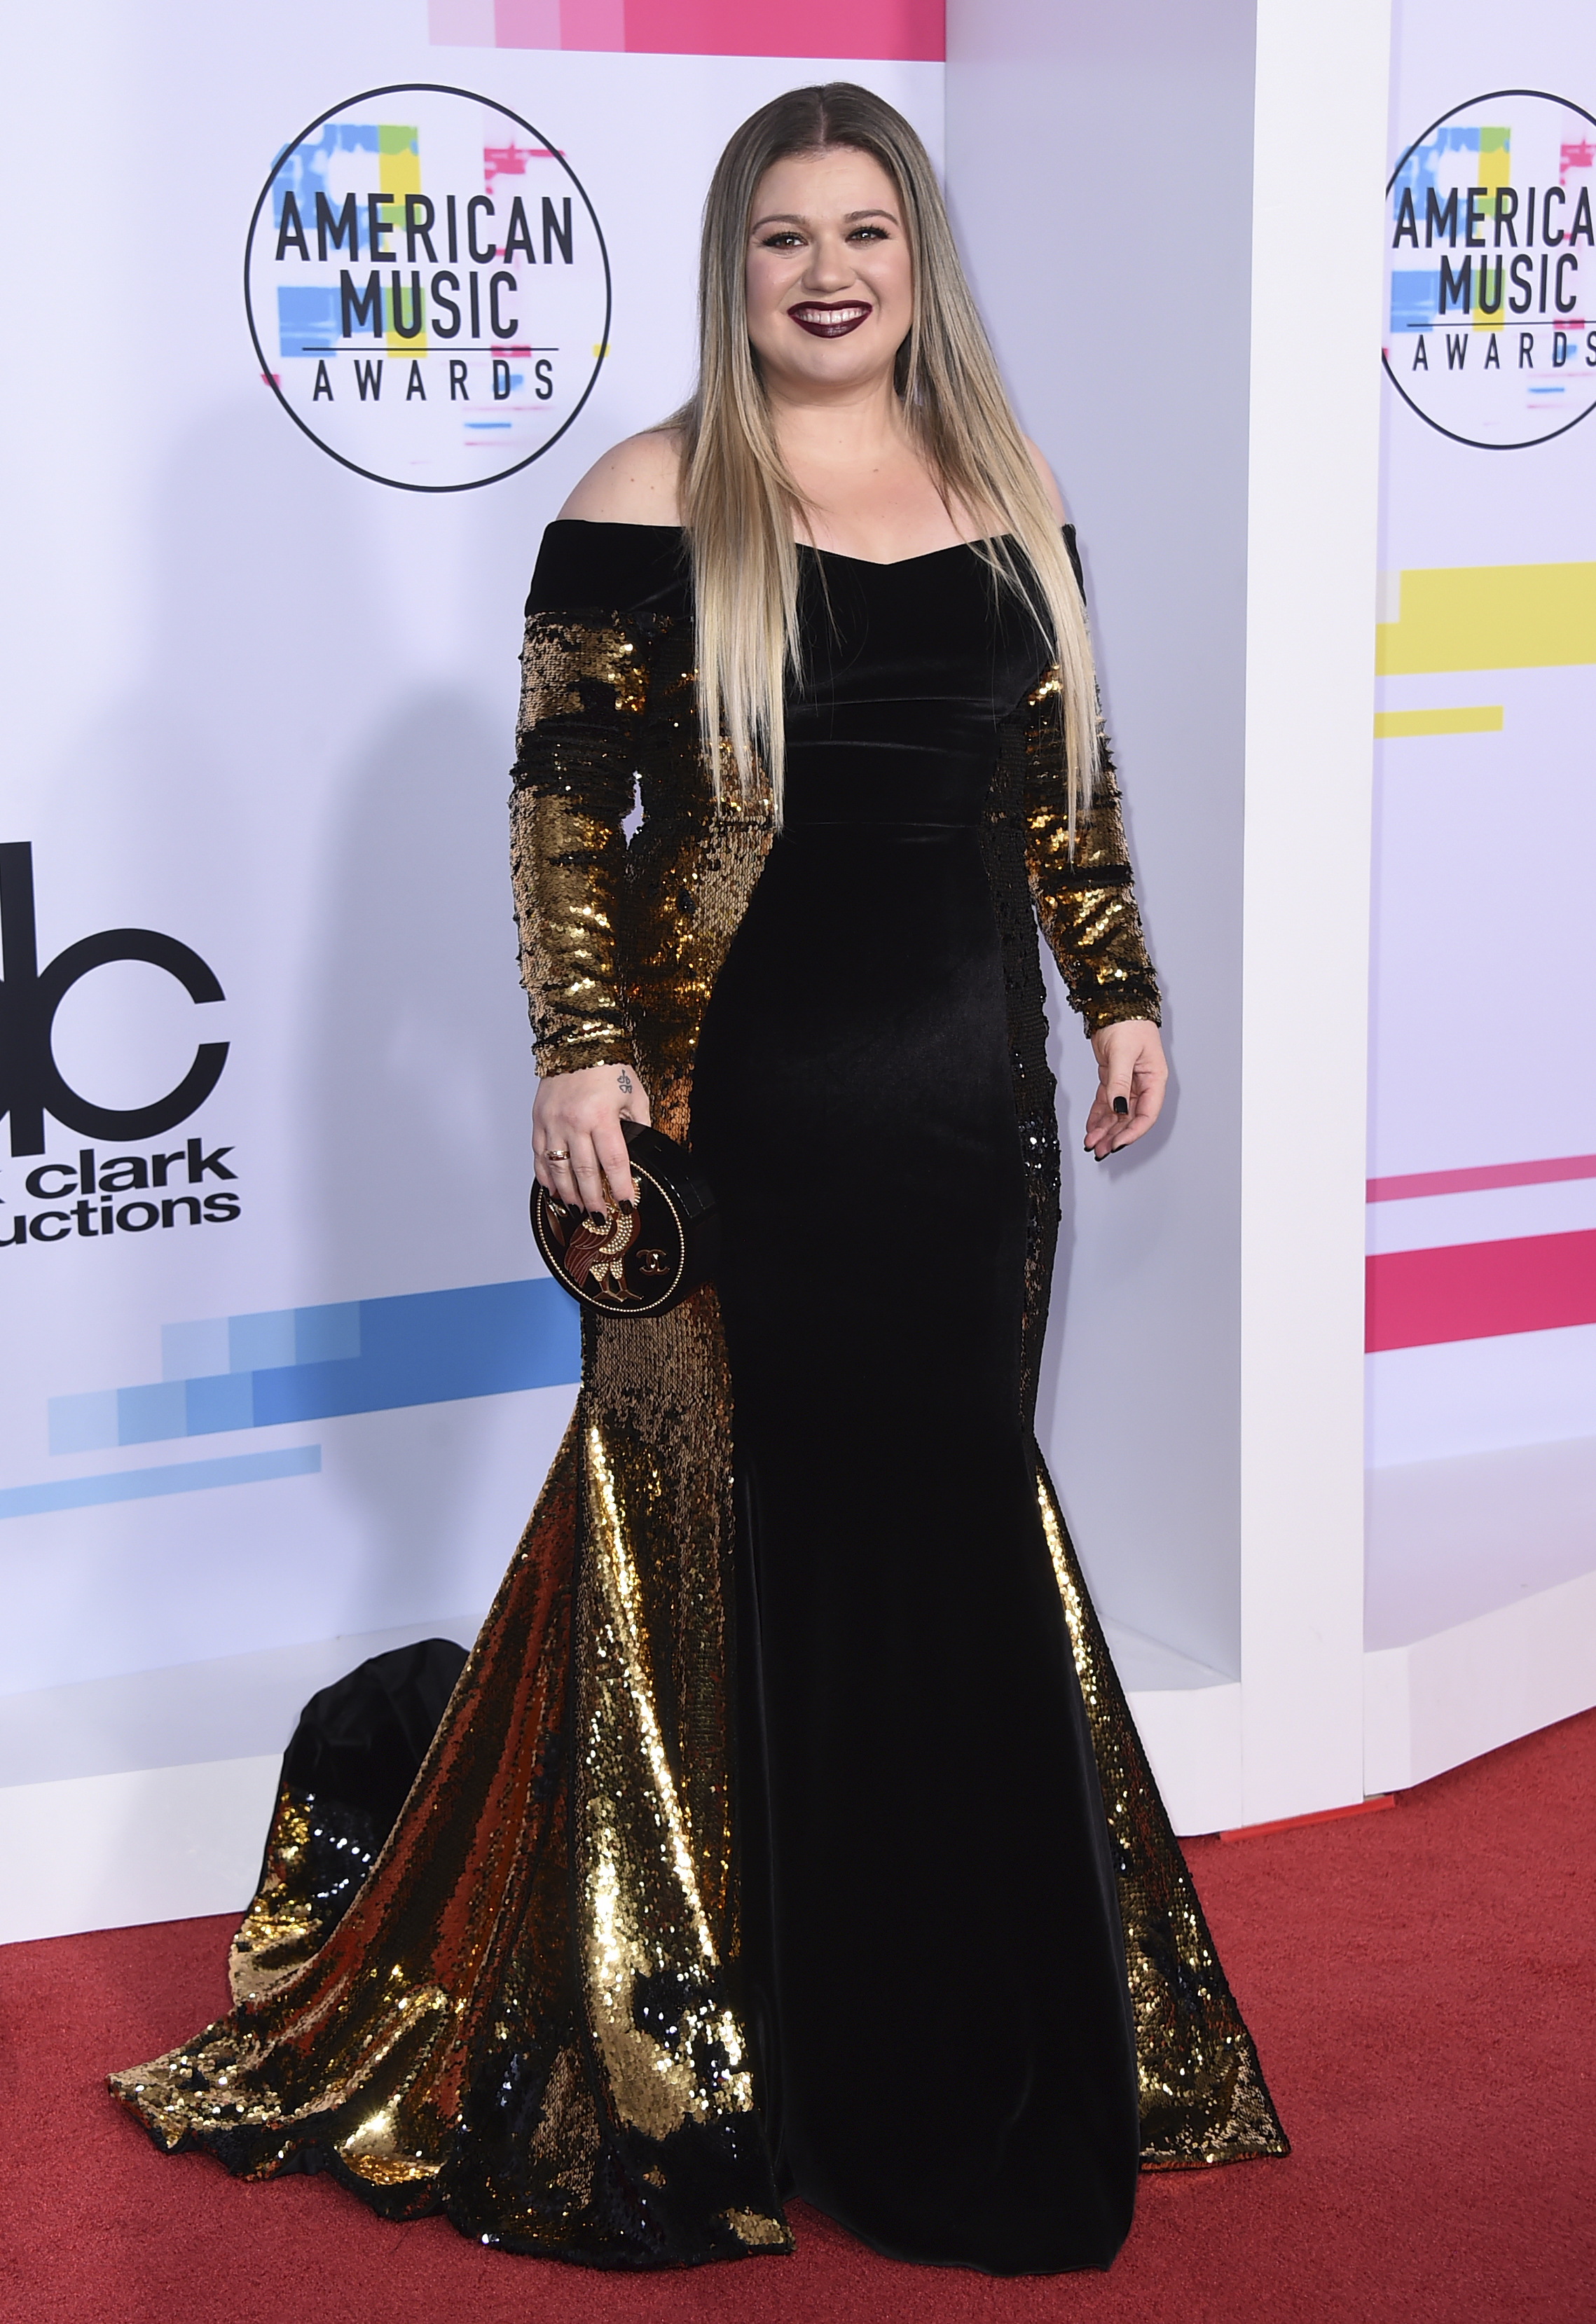 <div class='meta'><div class='origin-logo' data-origin='none'></div><span class='caption-text' data-credit='Jordan Strauss/Invision/AP'>Kelly Clarkson arrives at the American Music Awards at the Microsoft Theater on Sunday, Nov. 19, 2017, in Los Angeles.</span></div>